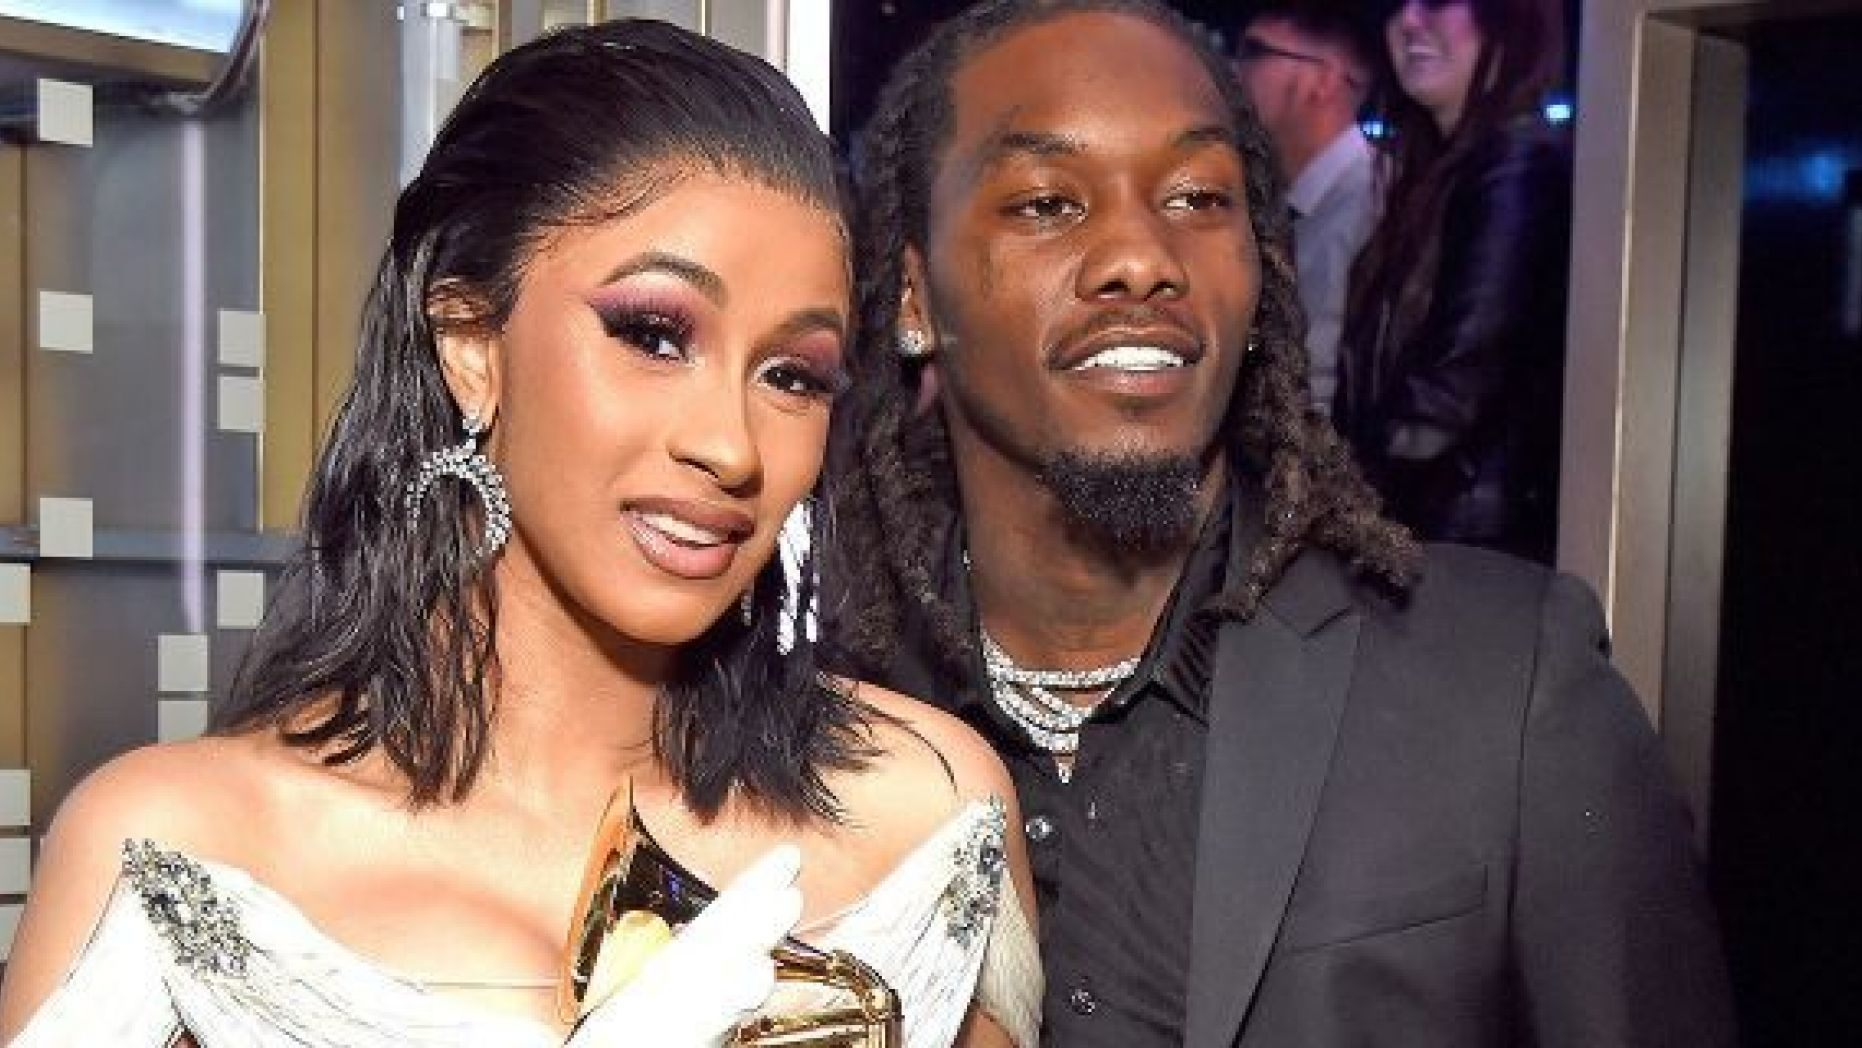 Offset Supports Cardi B After She Had To Cancel Concerts